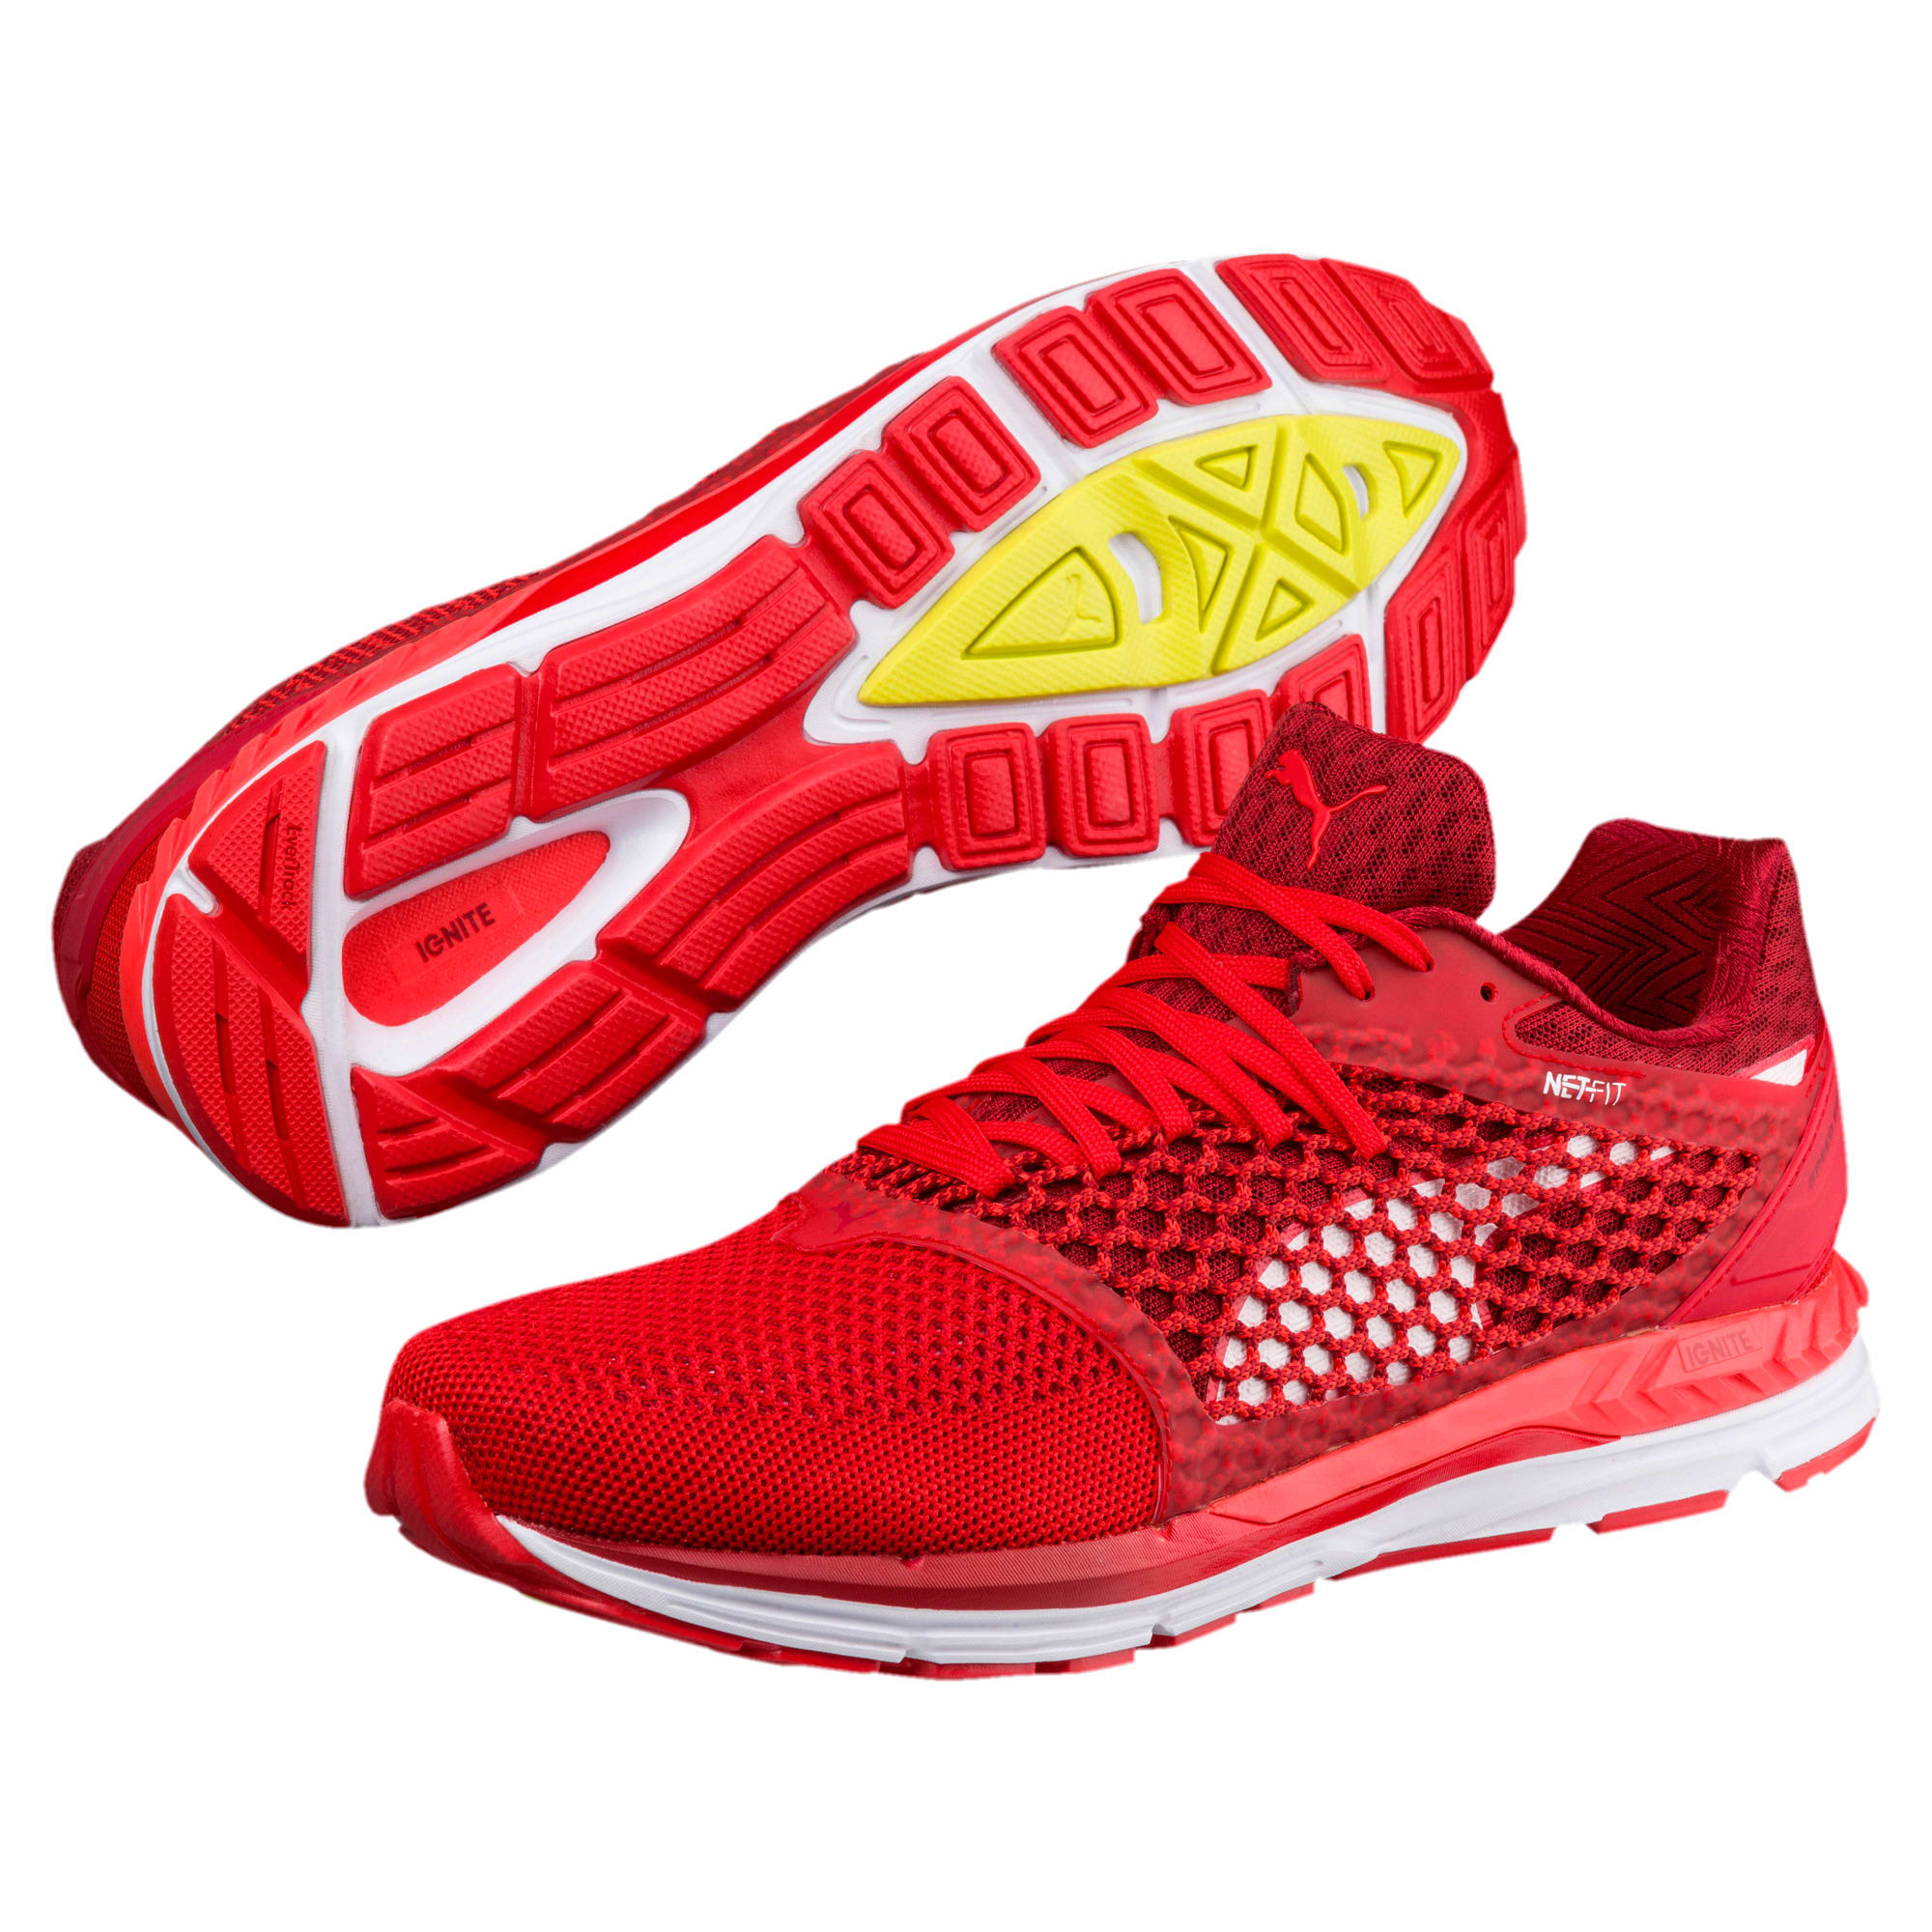 Thumbnail 2 of Speed 600 IGNITE 3 Men's Running Shoes, Scarlet-Red Dahlia-White, medium-IND